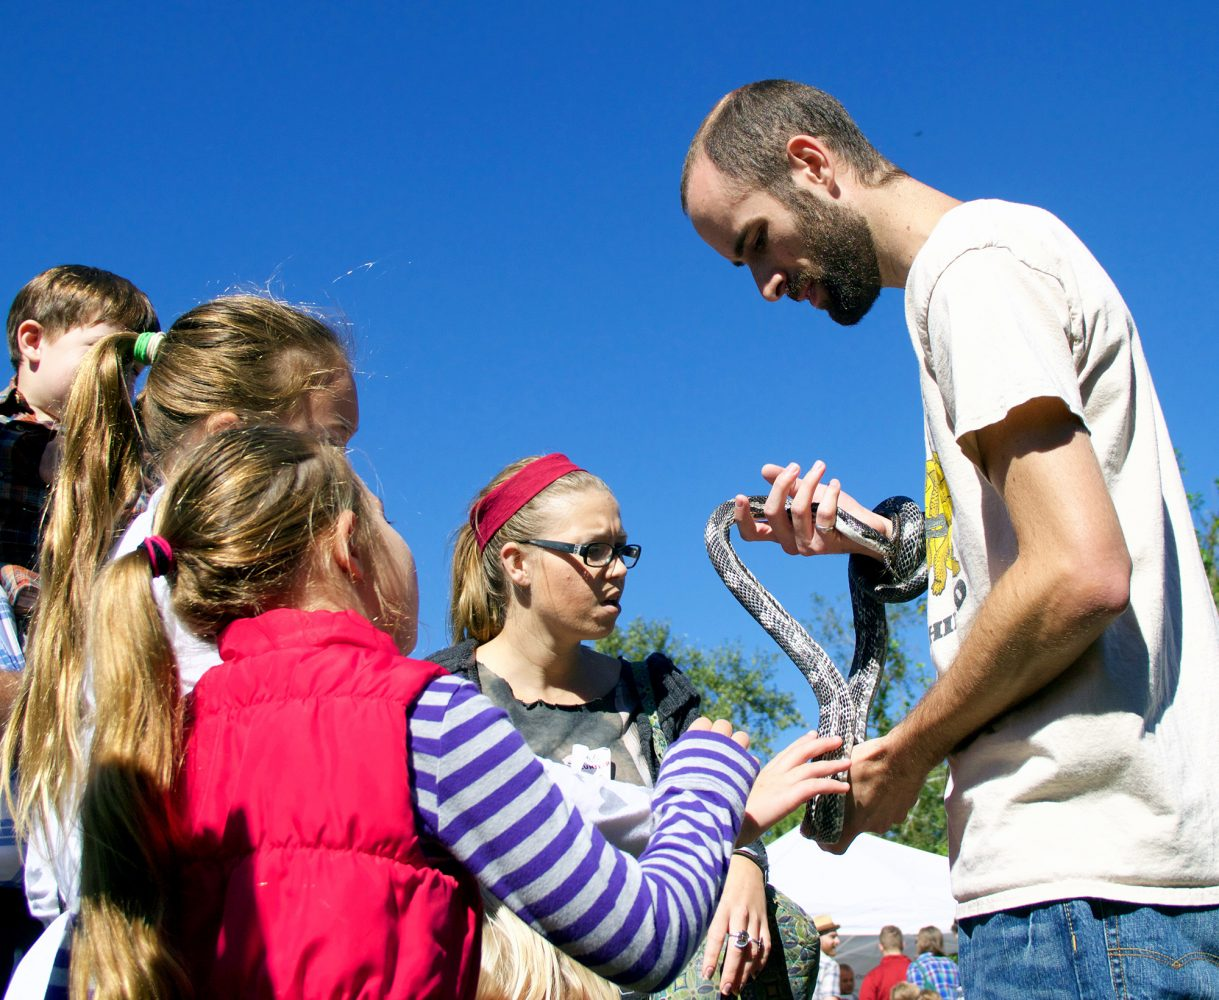 Ian Hahus, an agricultural engineering Ph.D. student at the University of Florida, holds a 6-foot-long grey rat snake named Hawkeye on Saturday while children look on and pet the snake. (Vedrana Damjanovic/WUFT News)